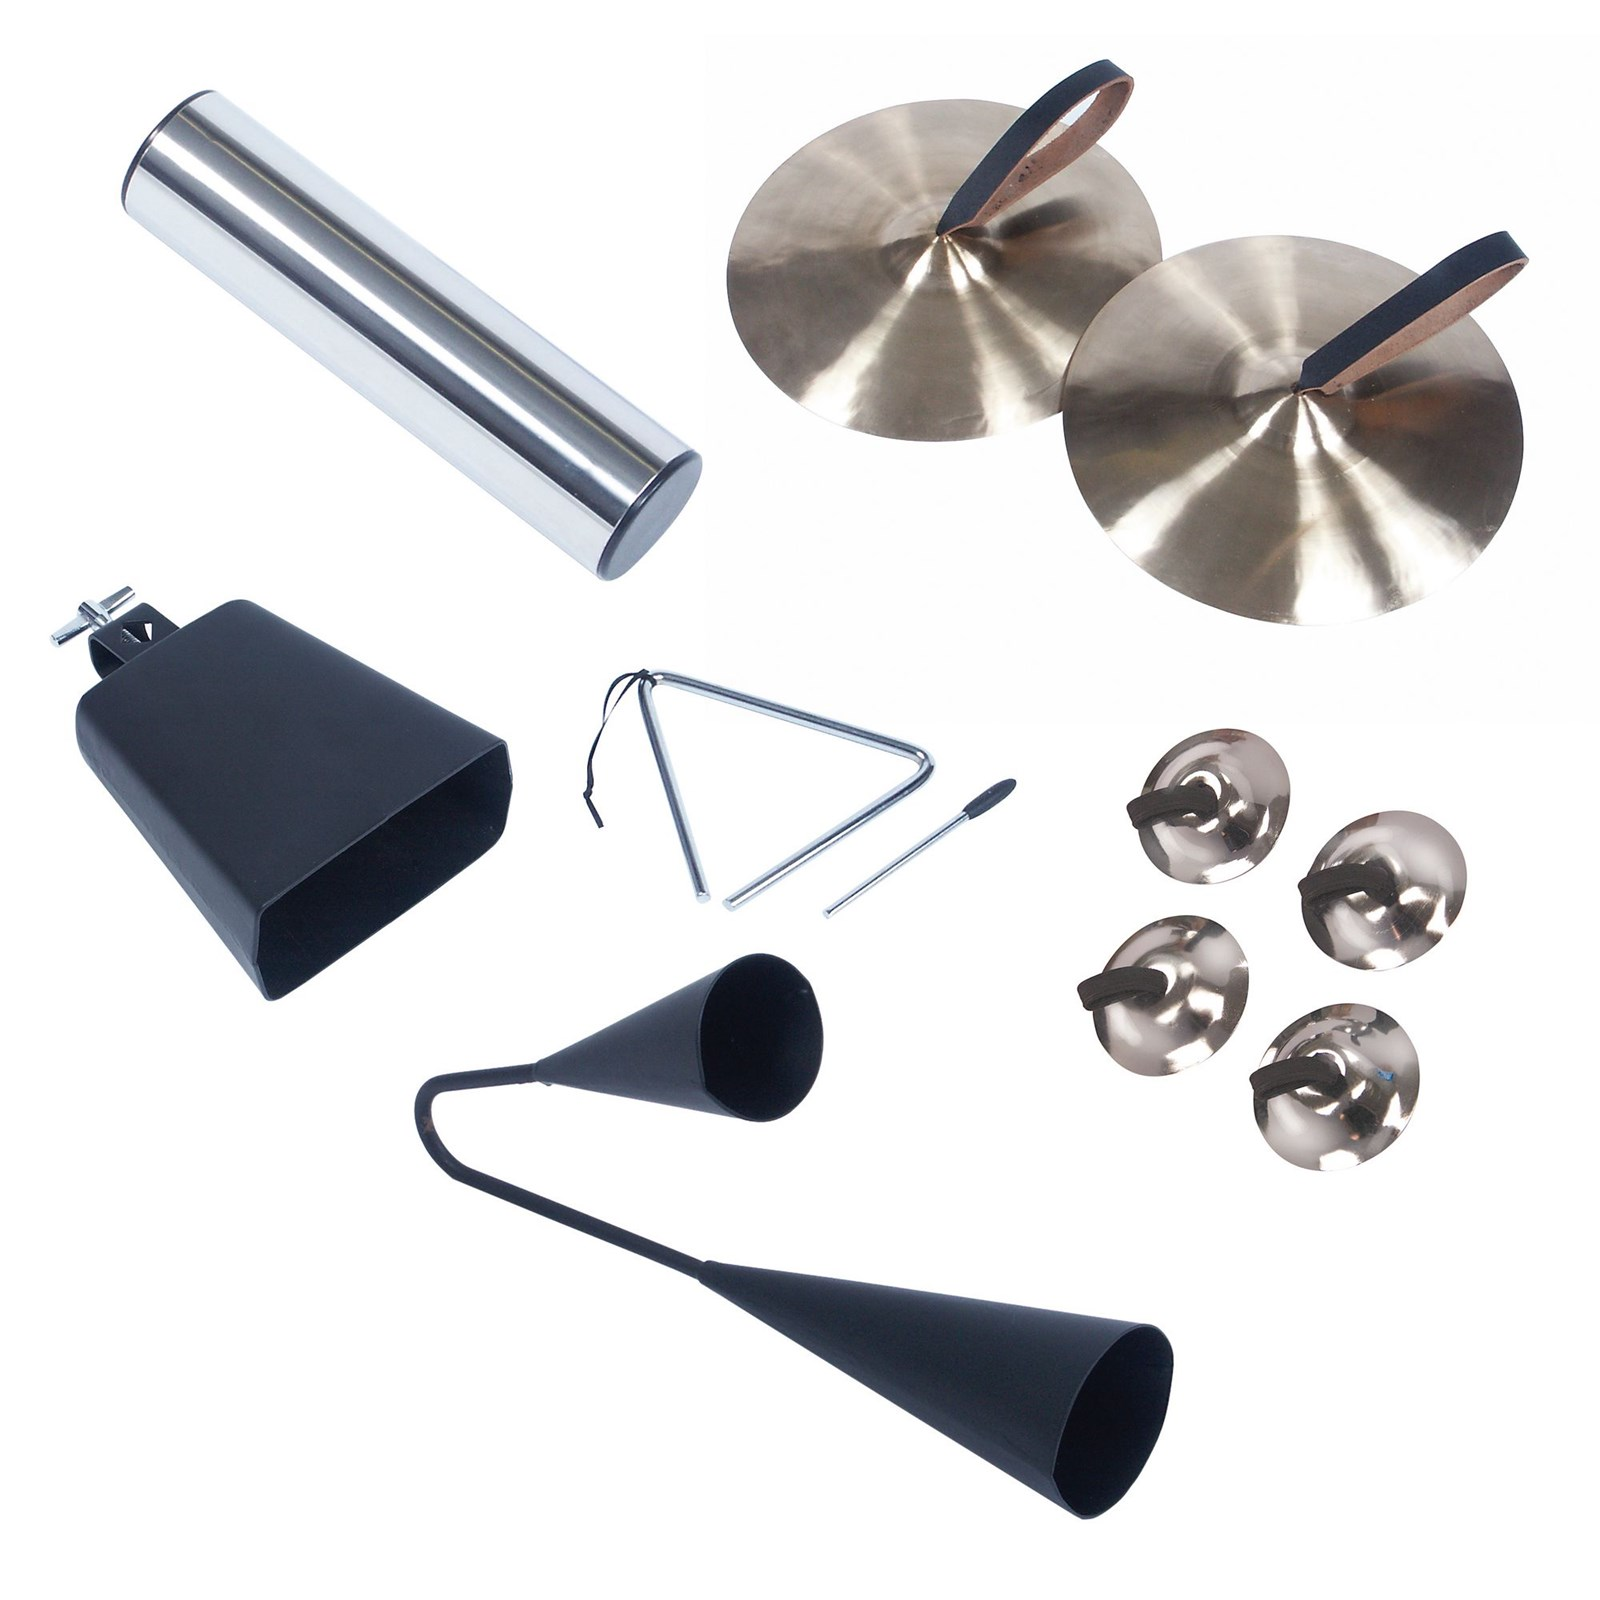 Metal Percussion Instrument Set - Pack of 7